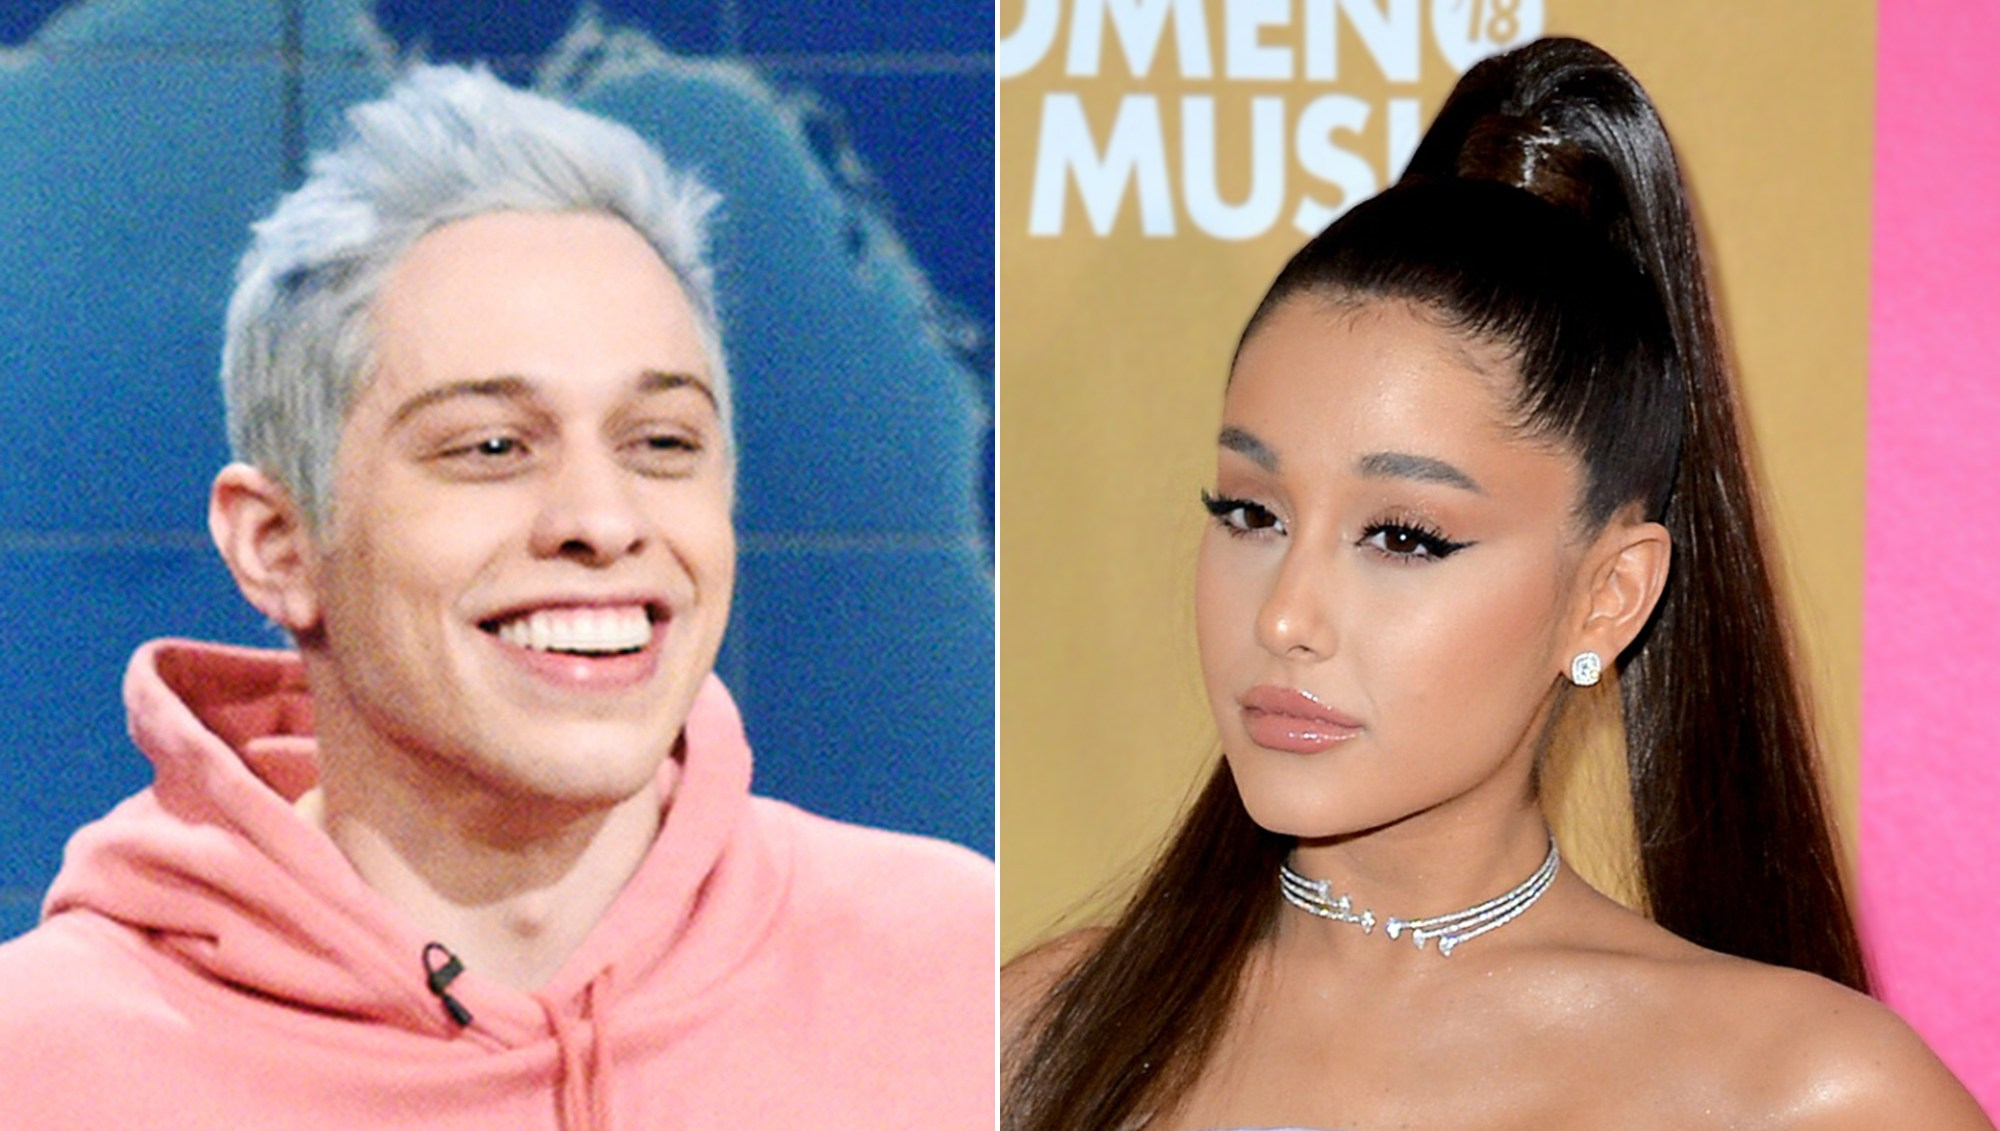 Pete Davidson Jokes About Ex Ariana Grande Praising the Size of His Manhood